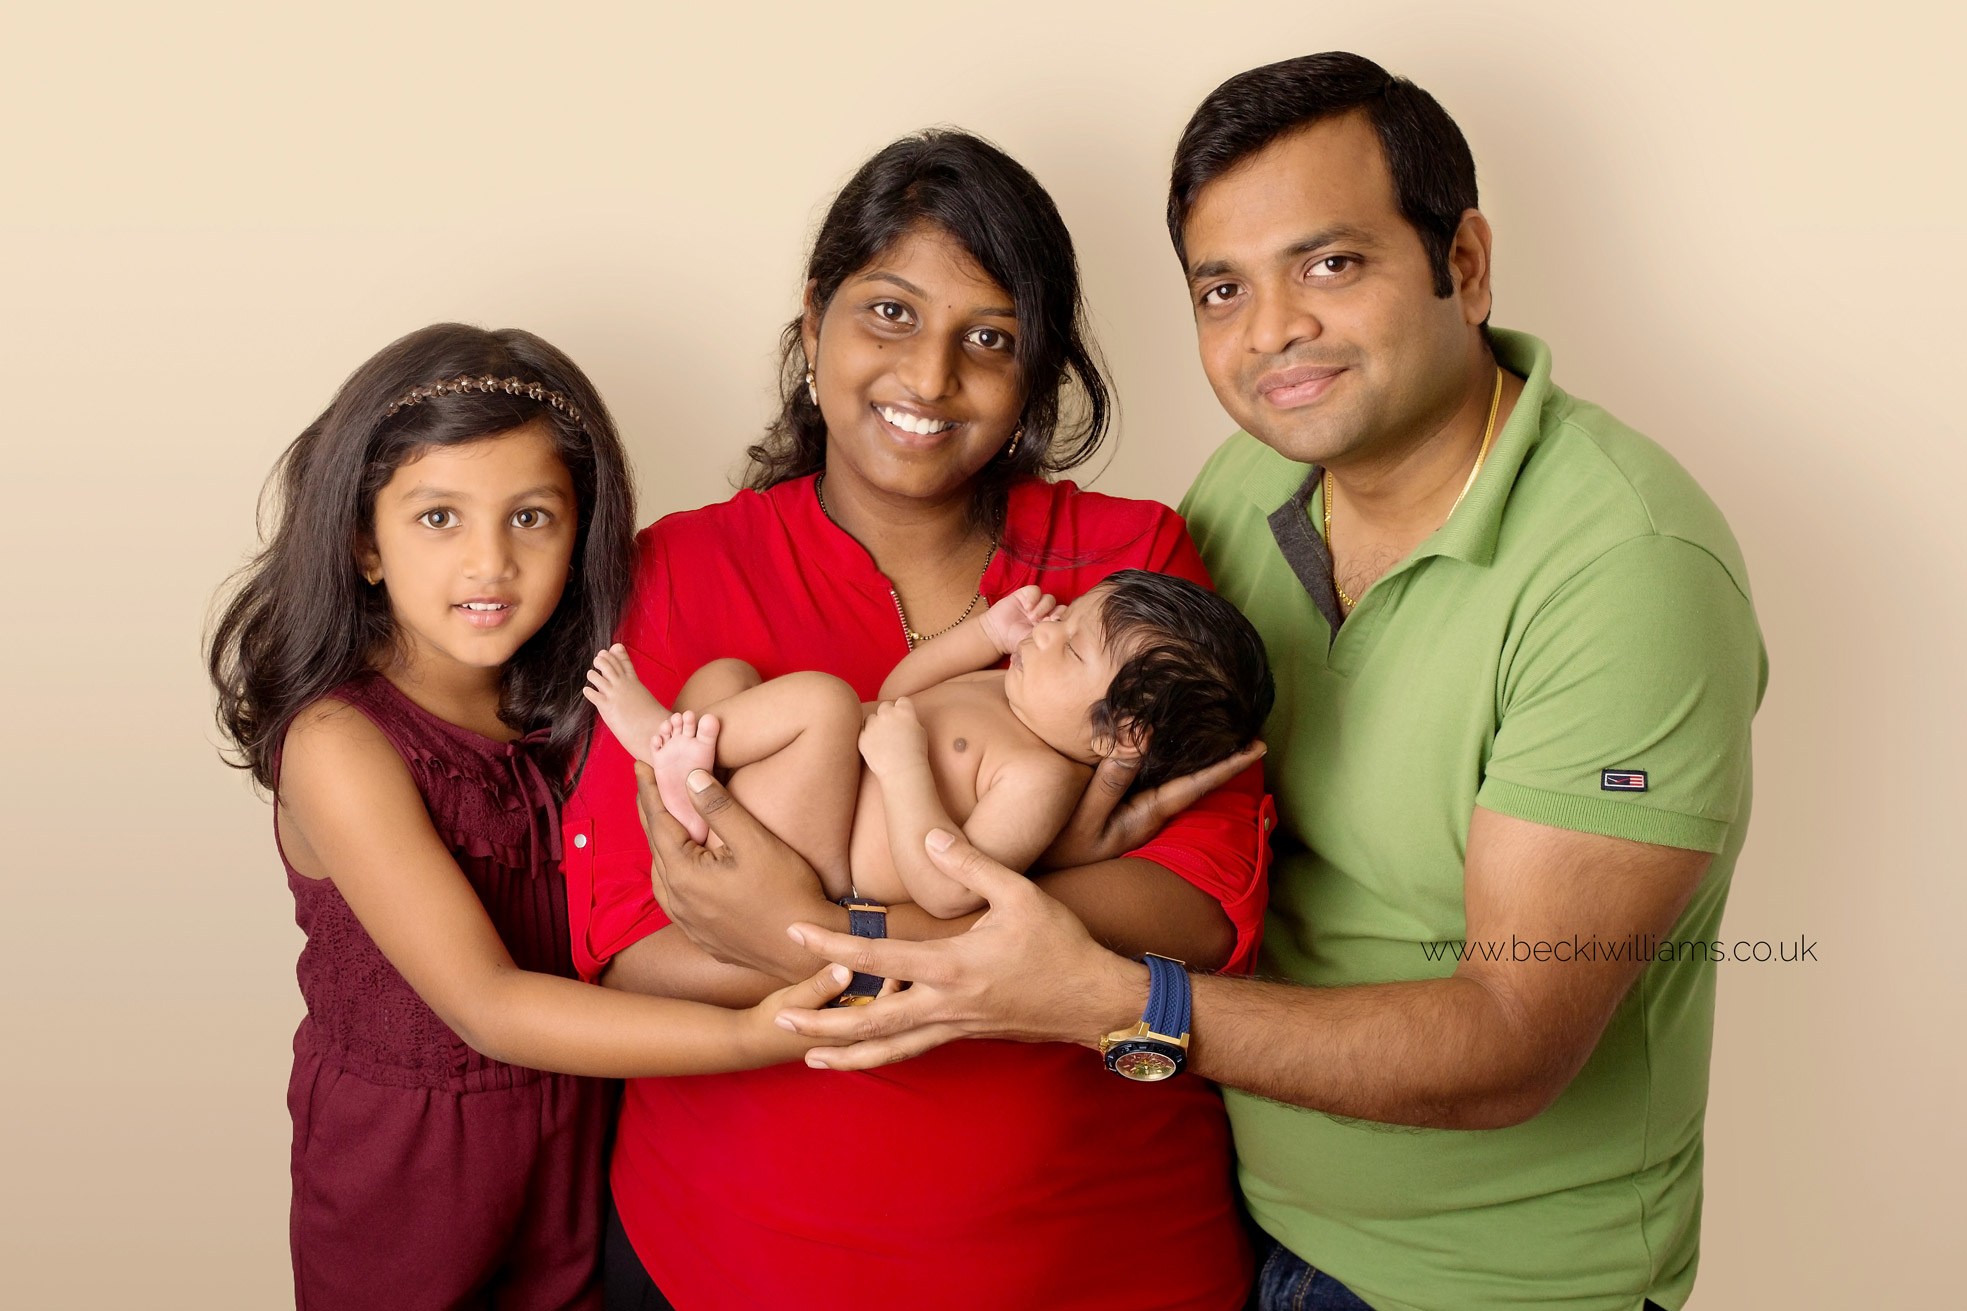 newborn baby being held by her mum with her dad and big sister for their newborn photo shoot in hemel hempstead